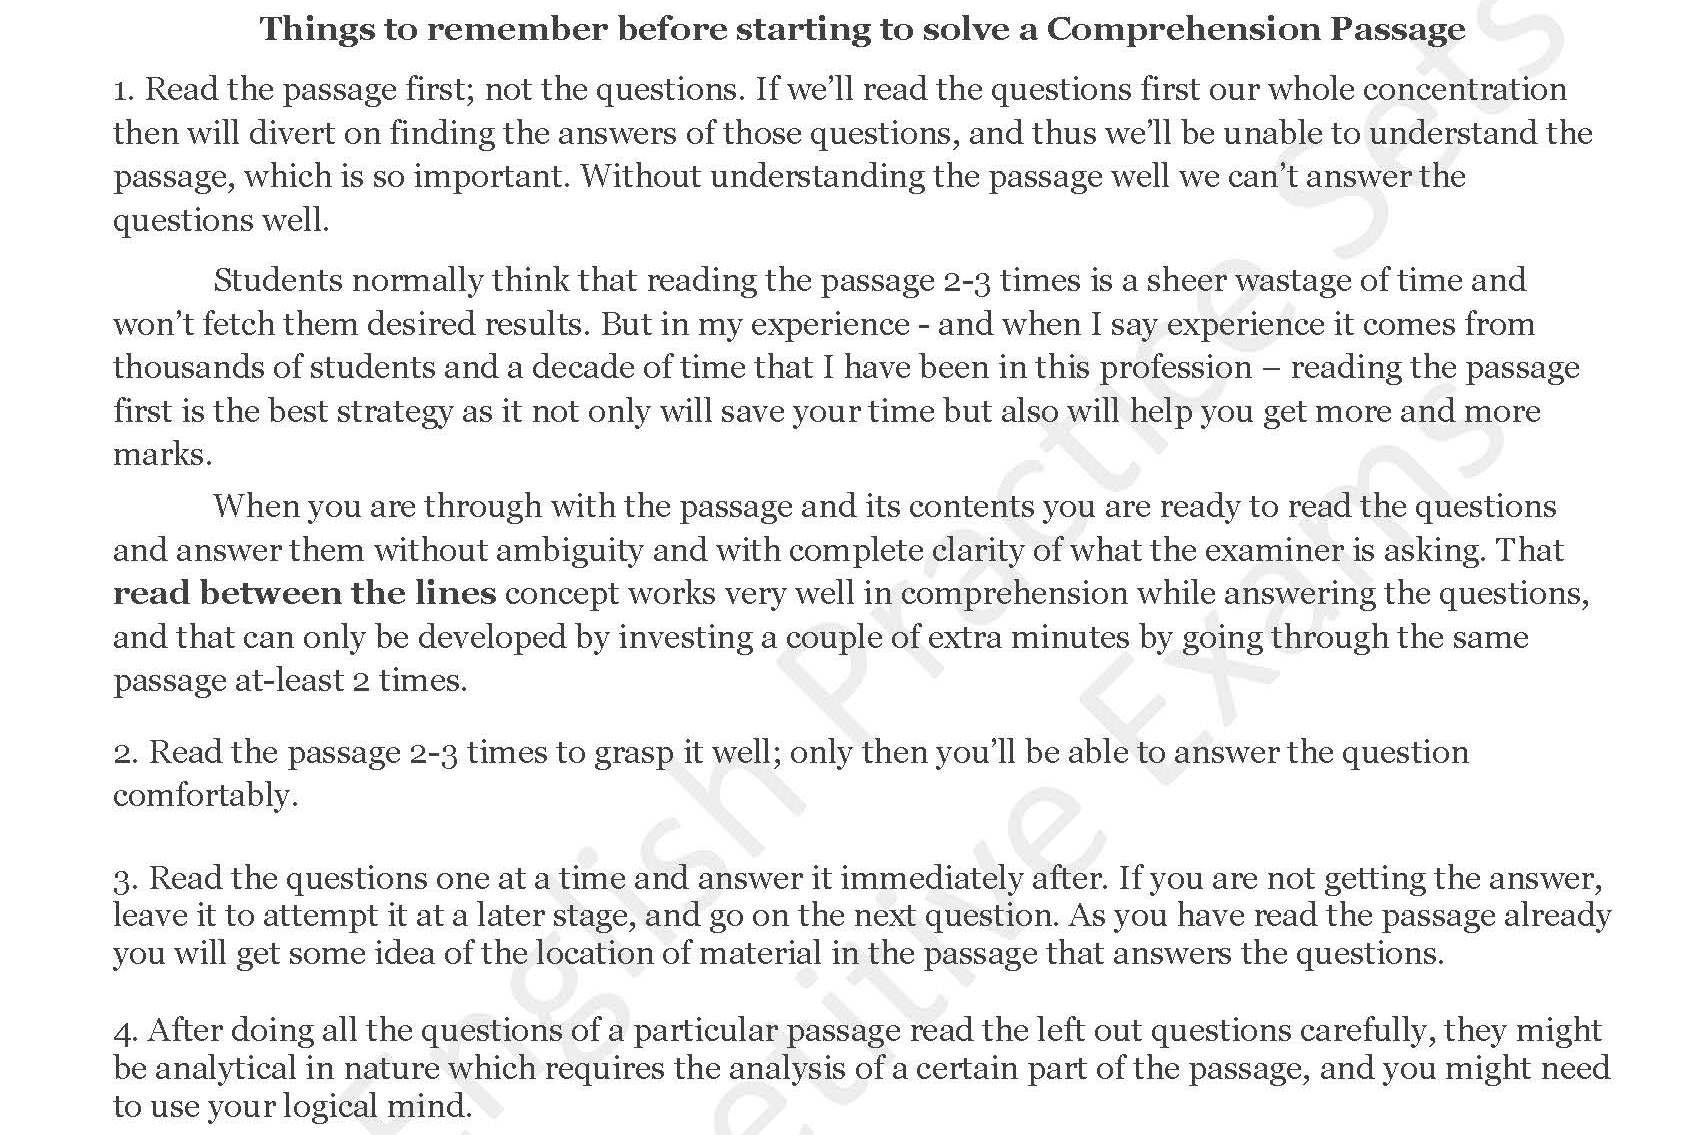 - PRACTICE COMPREHENSION PASSAGES — SOLVED EXAMSCOMP